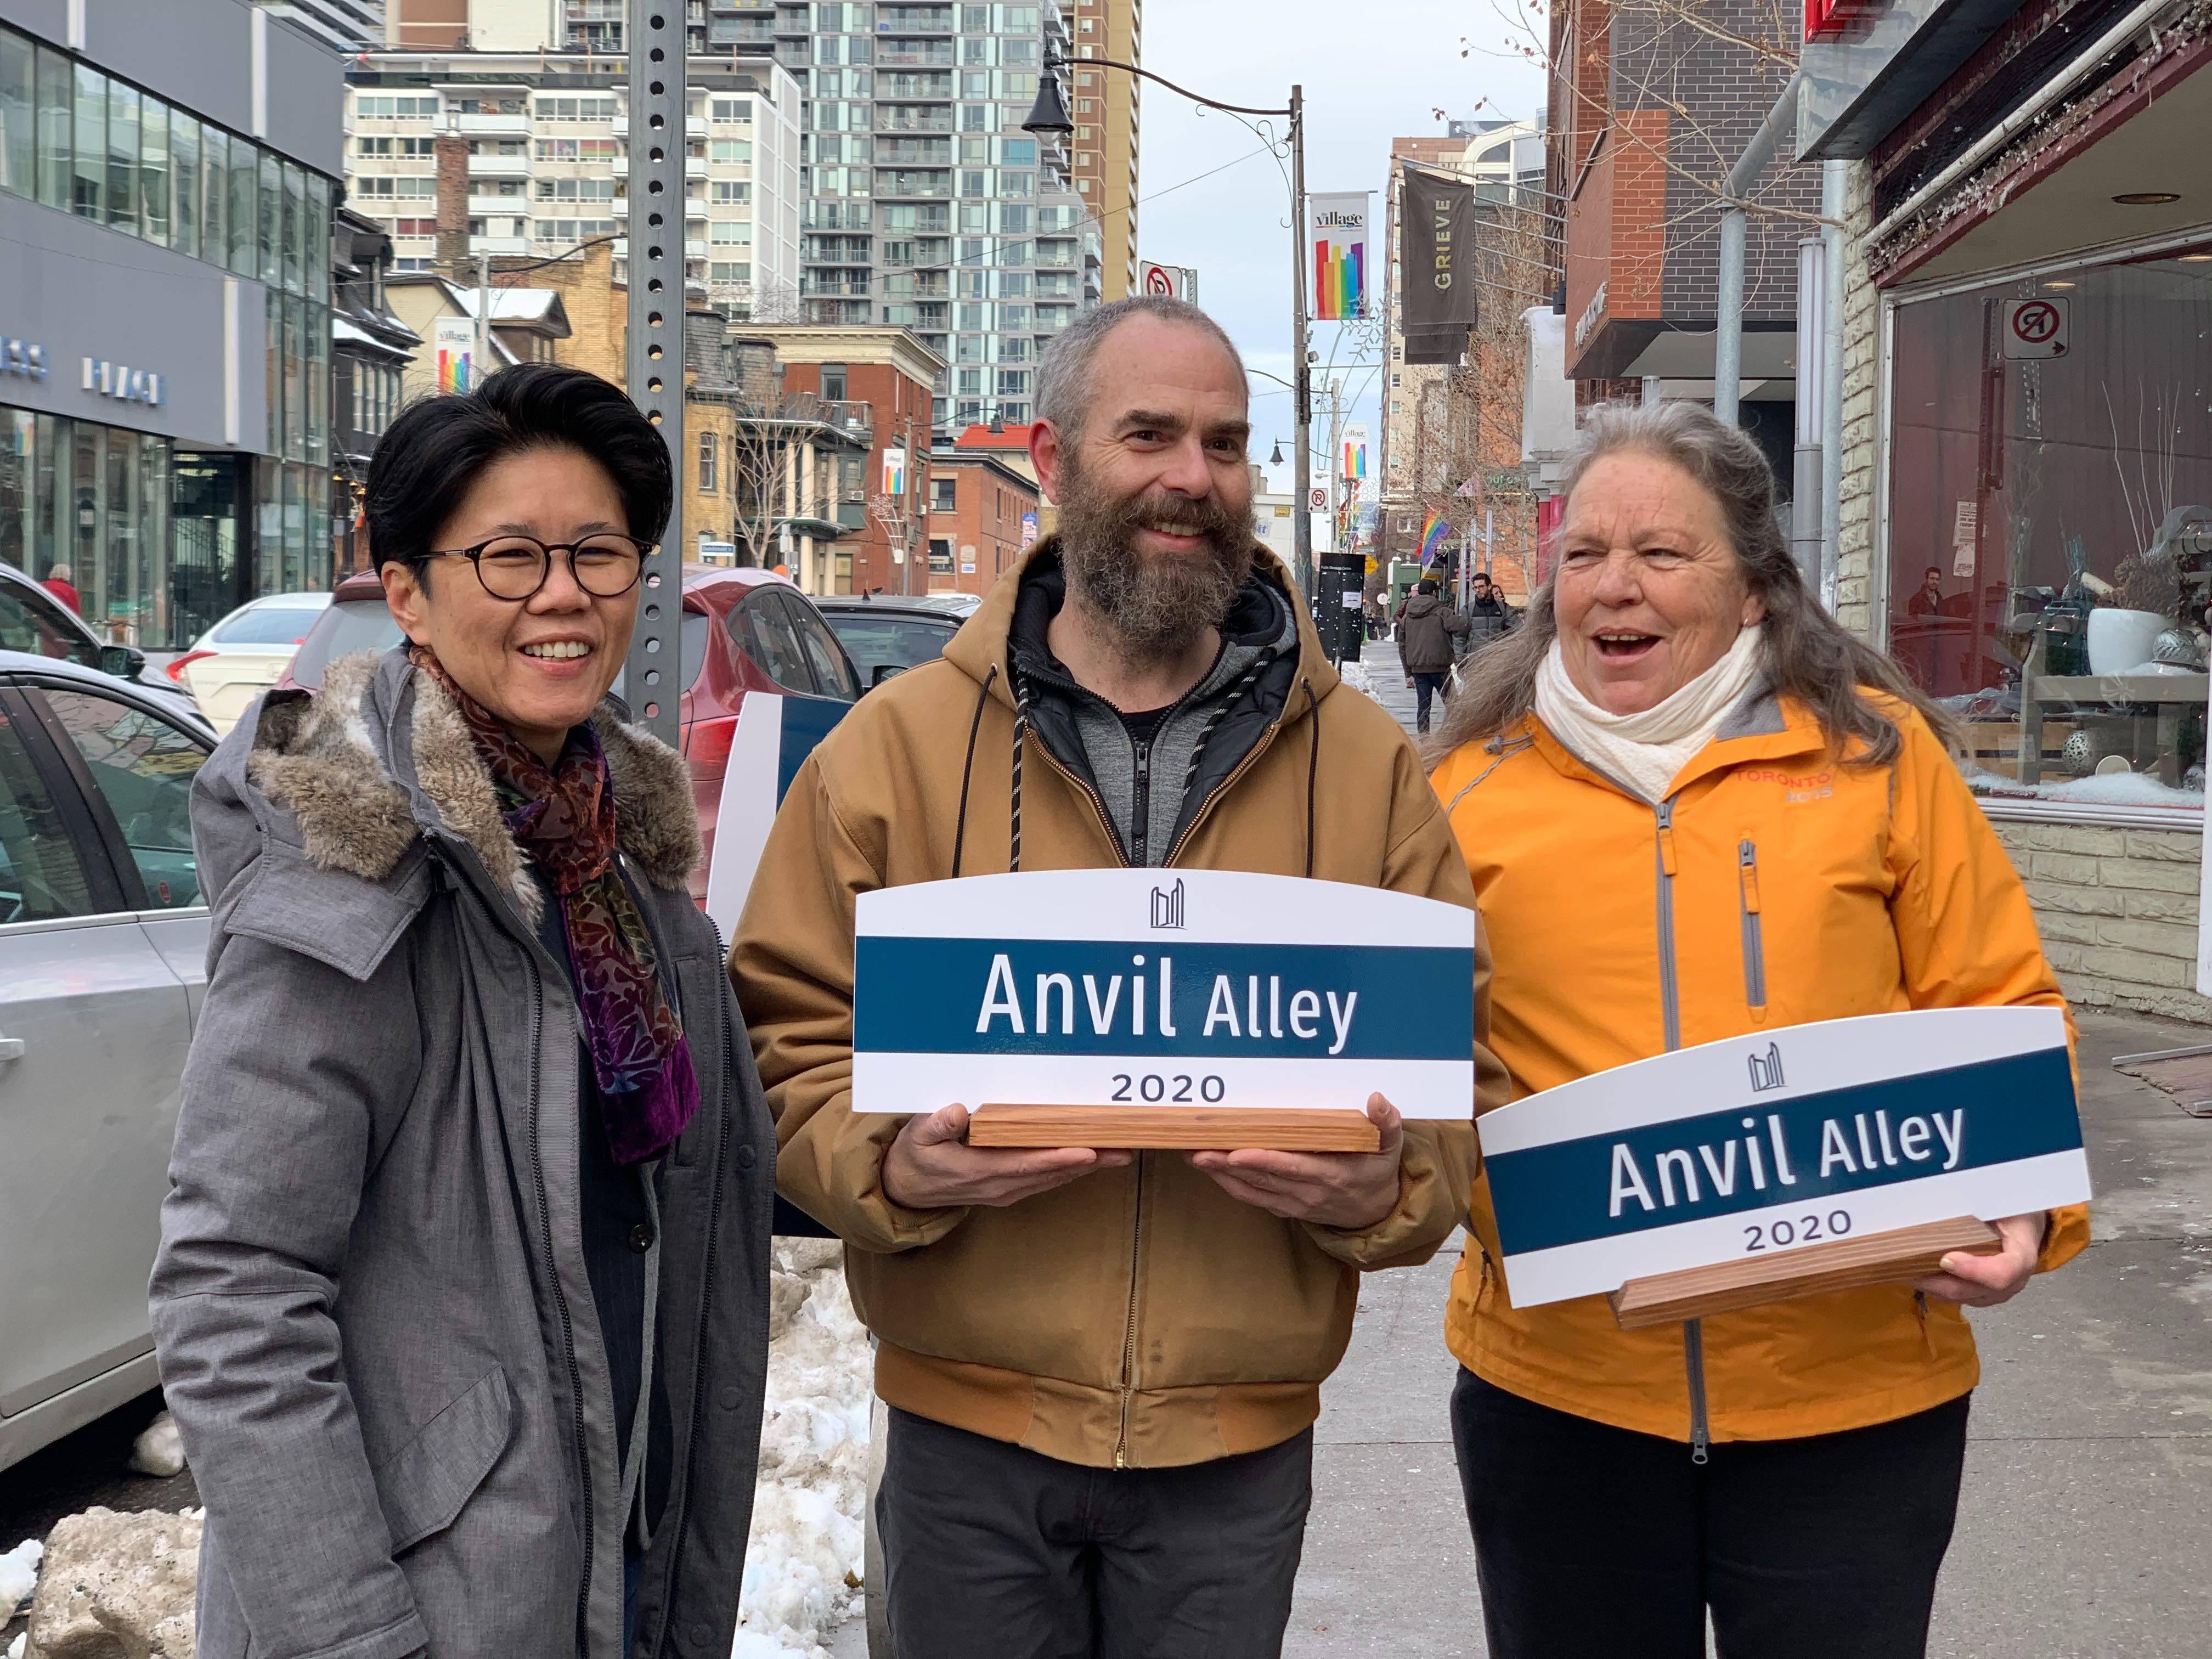 Anvil Alley